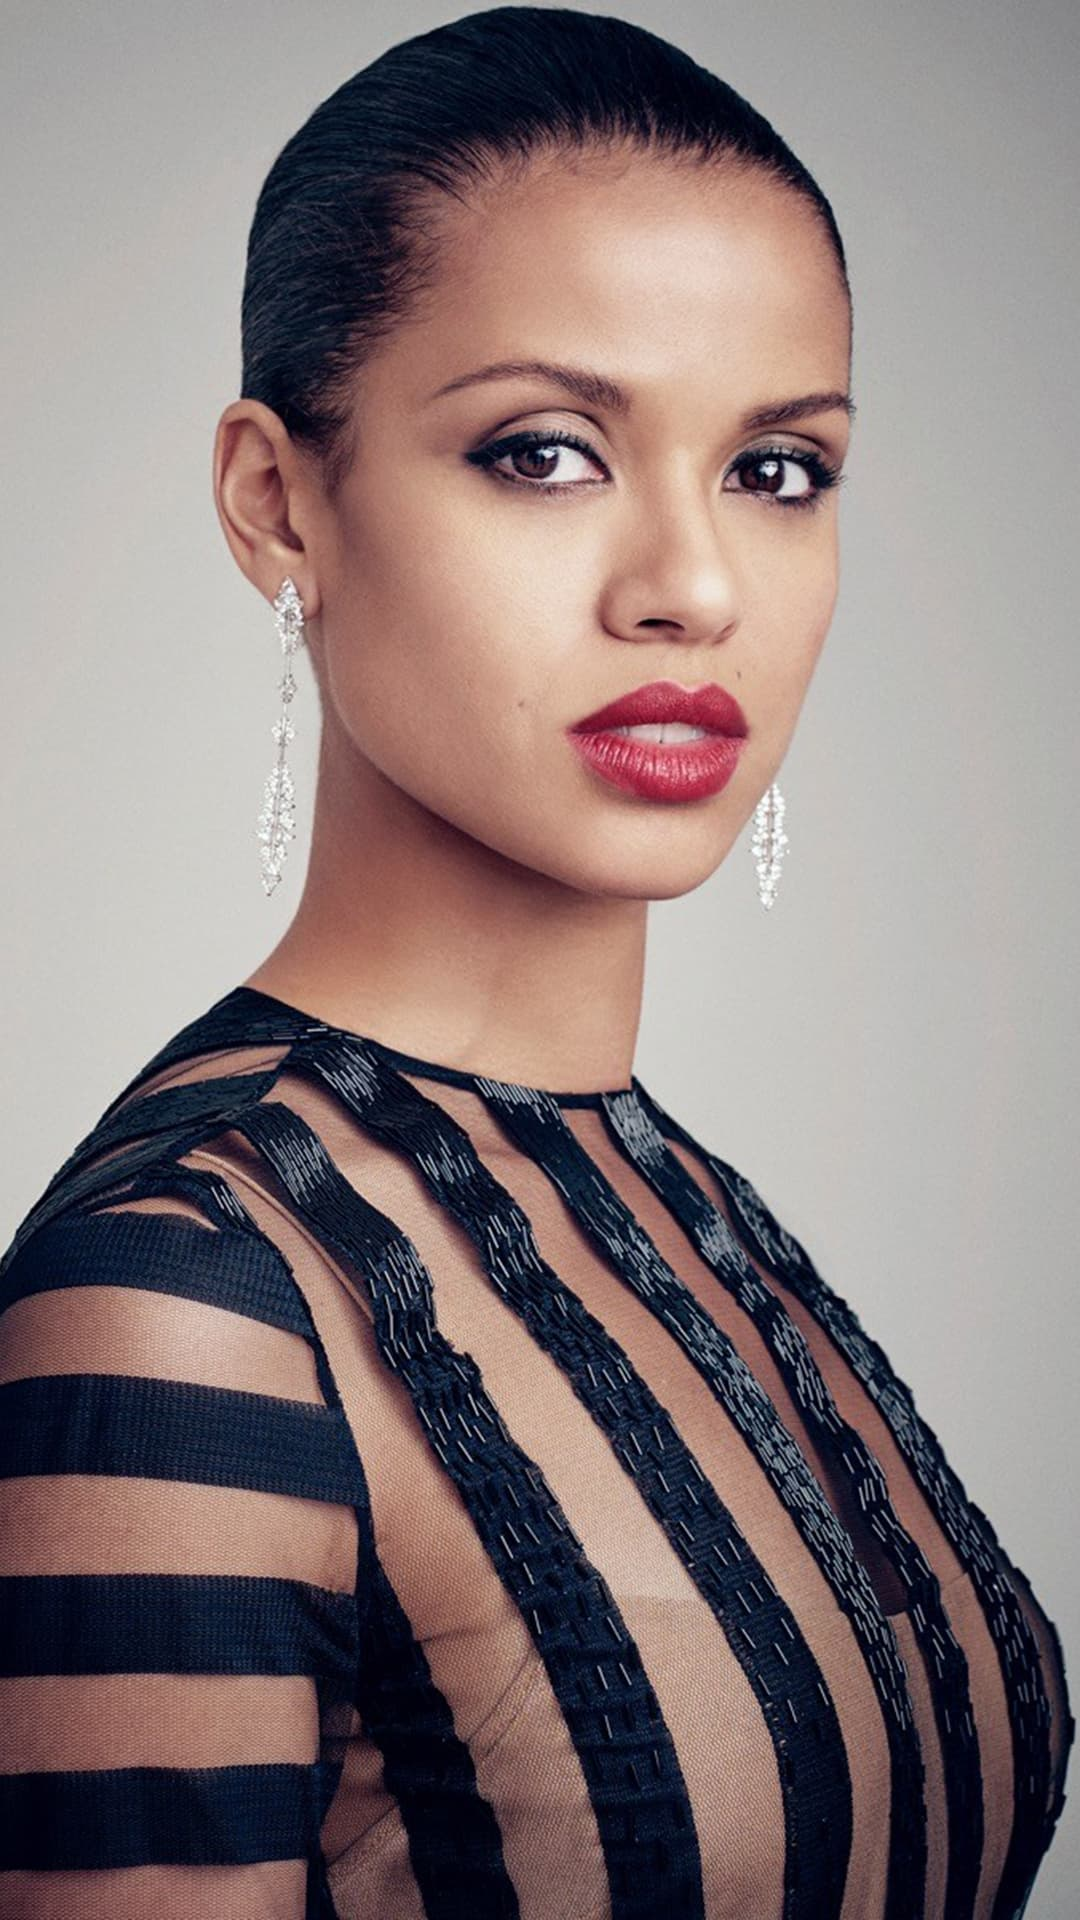 Wallpapers Of Girls Gugu Mbatha Raw Wallpapers High Quality Resolution Download